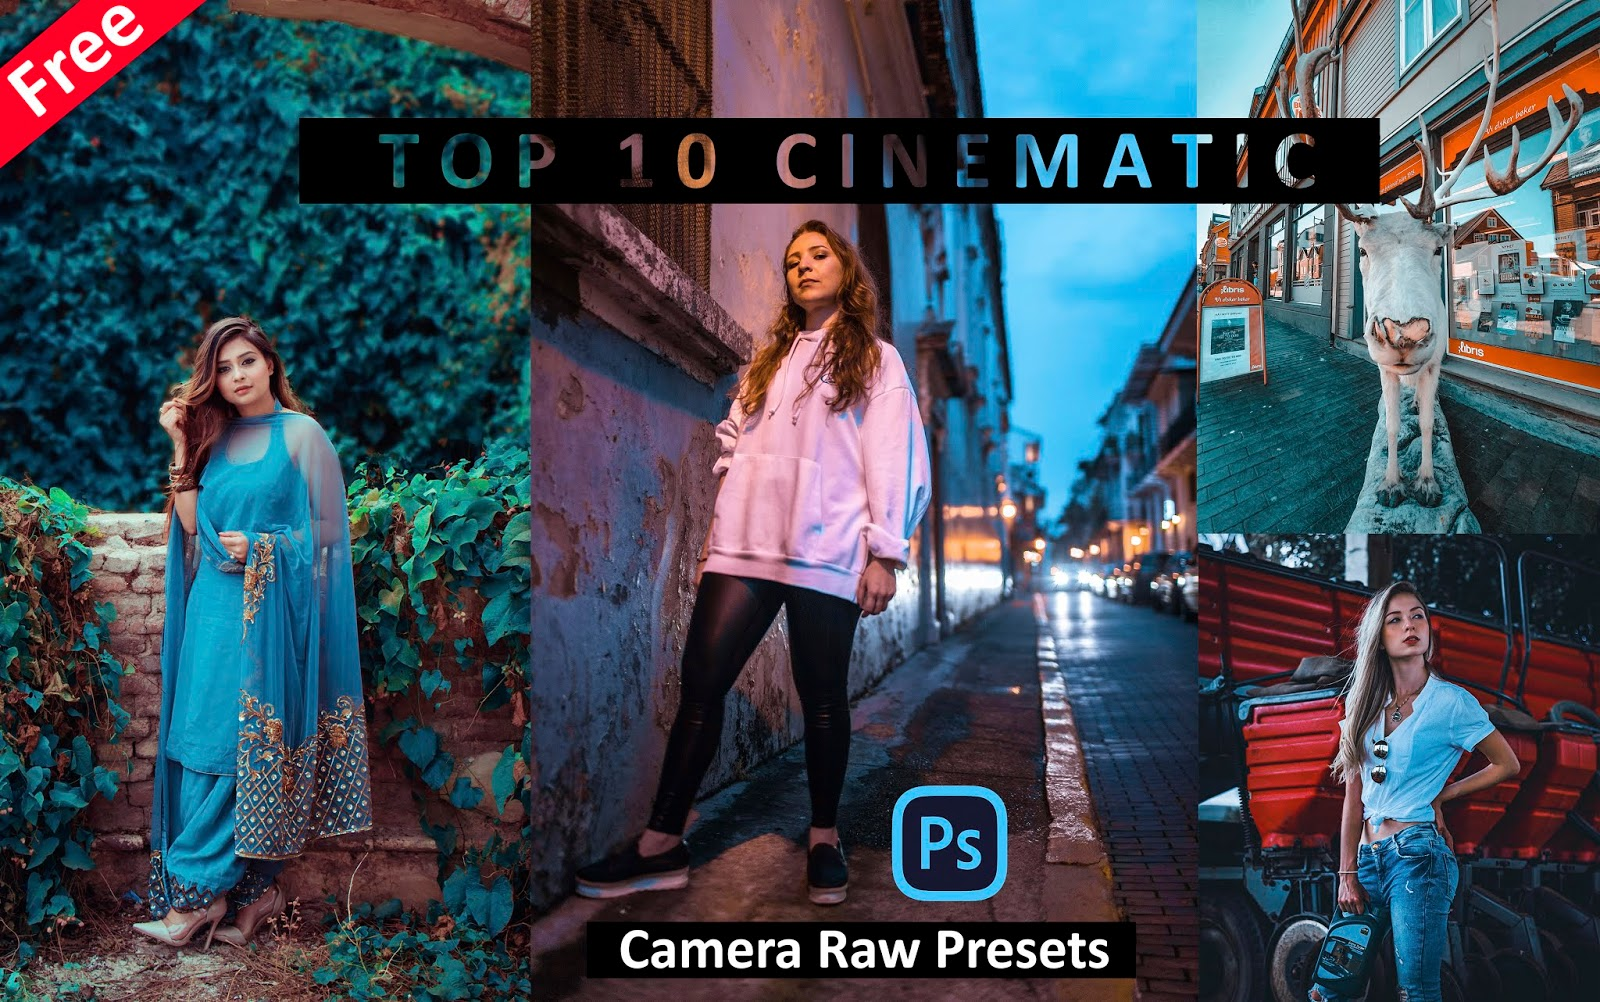 Download Top 10 CINEMATIC Camera Raw Presets for Free | Cinematic Effect in Photoshop